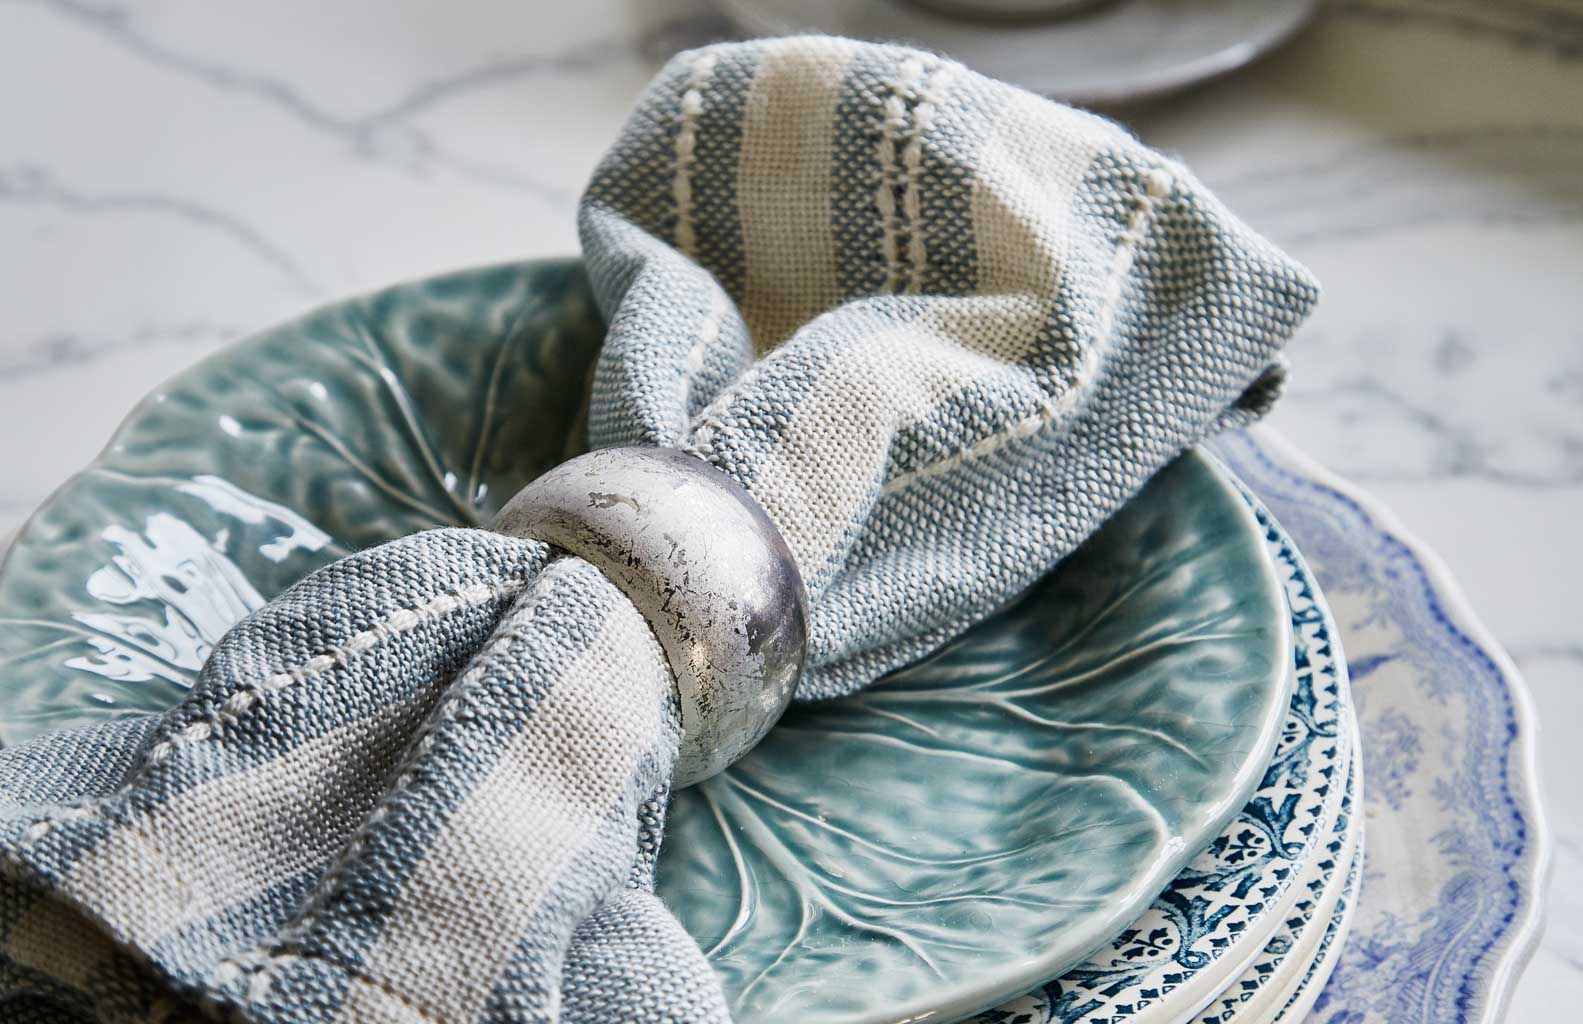 marseille blue and white napkins on saucer